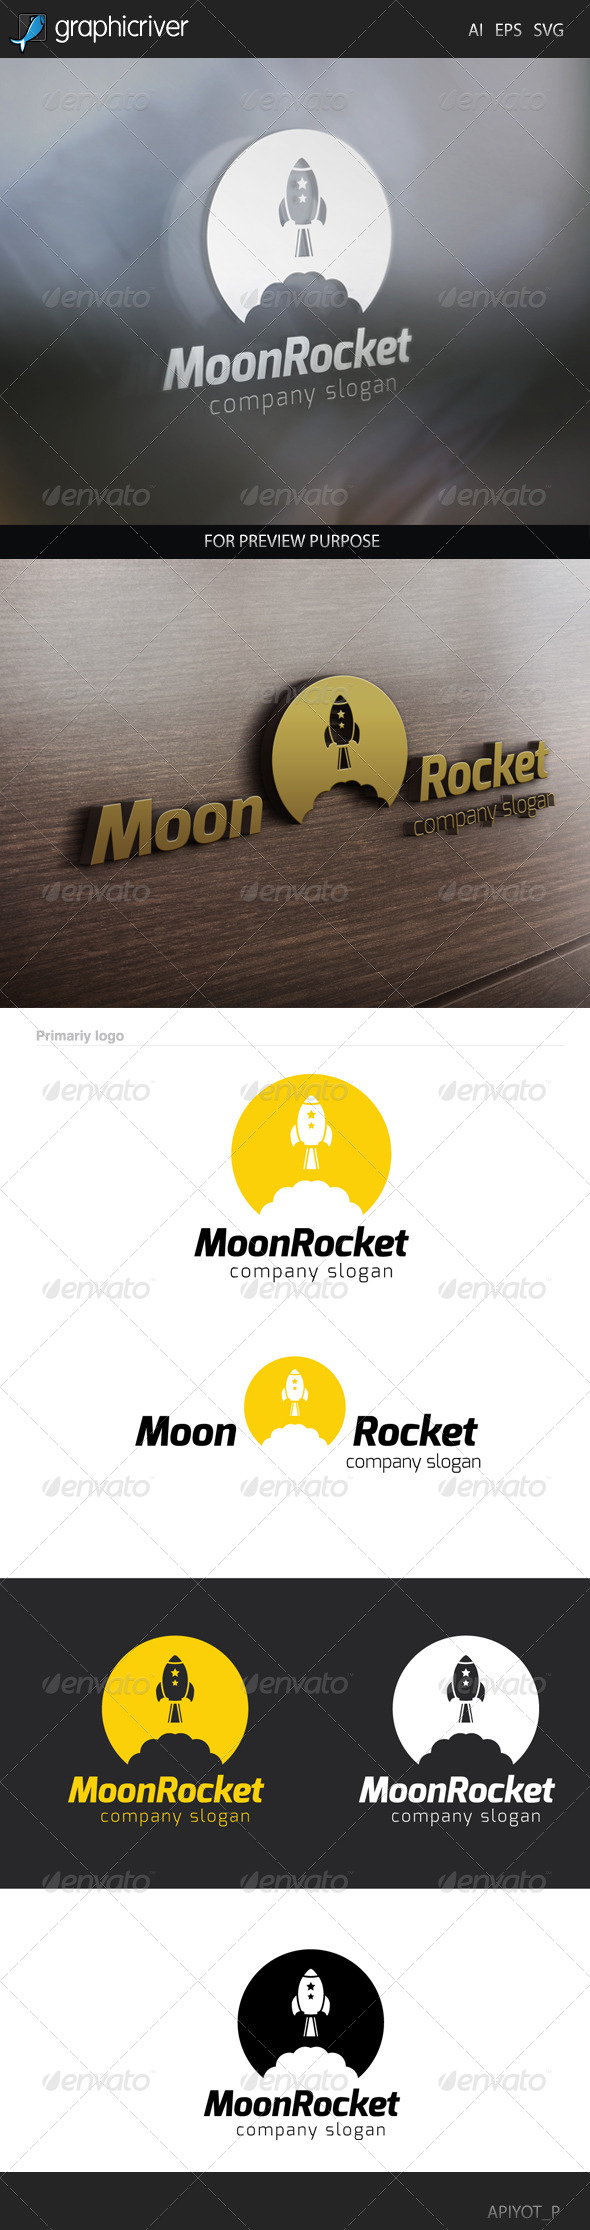 Moon Rocket 1 logo